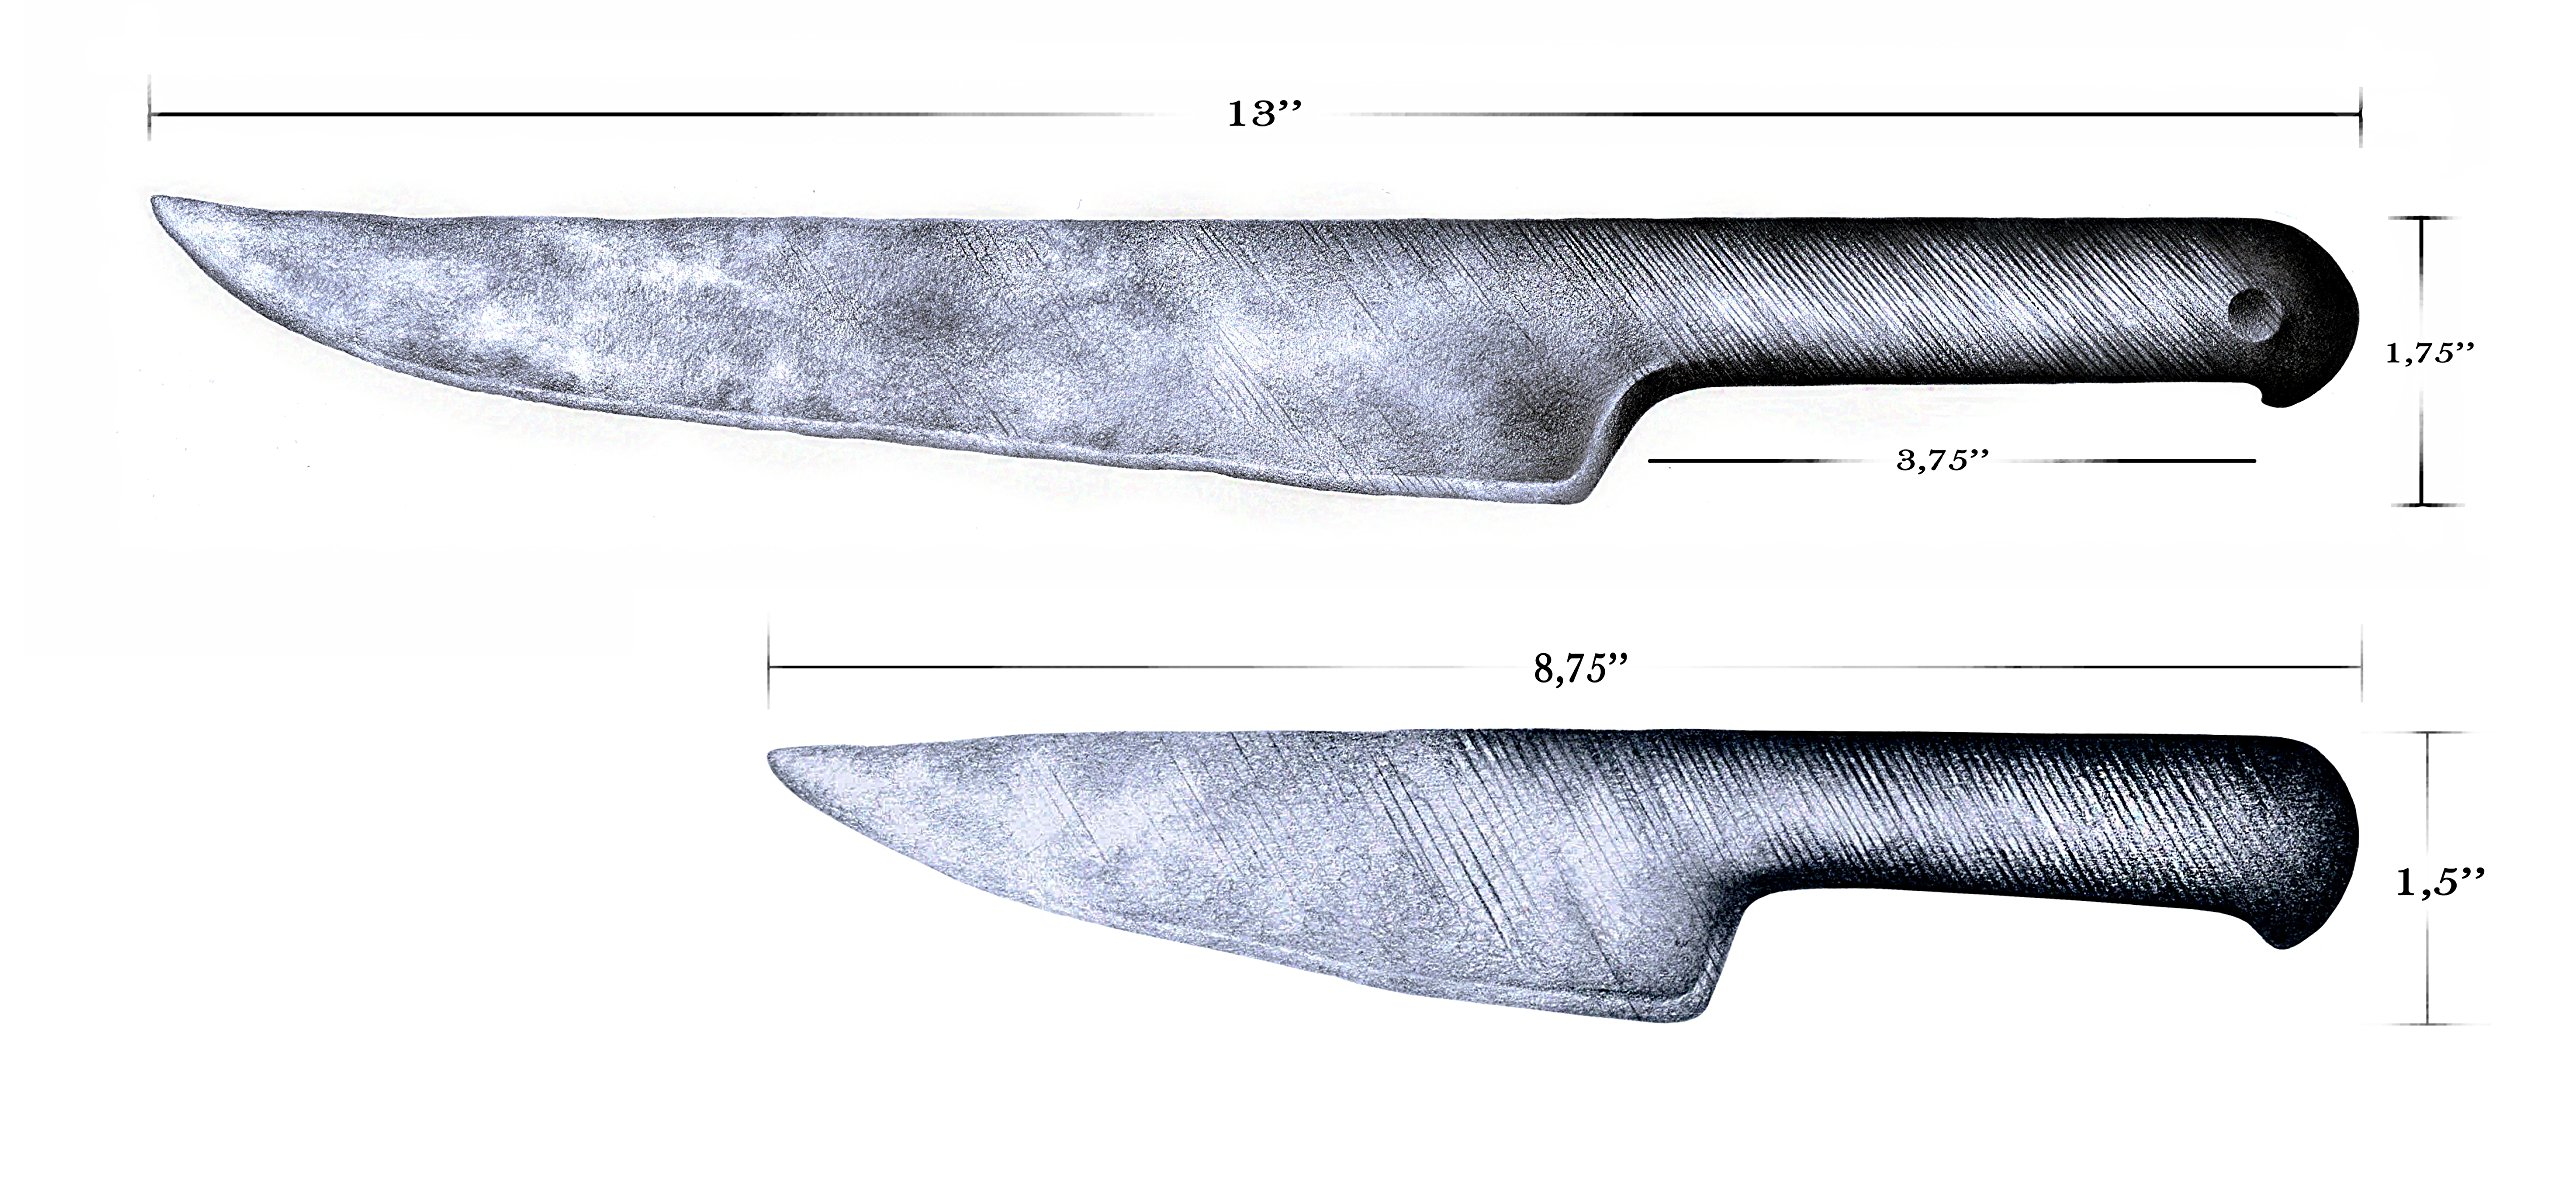 Forged in Fire from Steel File : Nude Knife Set : Cave Man Collection - Natural Shape Fixed Handle Knives. Specialty Carbon Steel Knives for Hunters to Process Carcass, Bushcrafting, Camp Chores by Agile (Image #5)